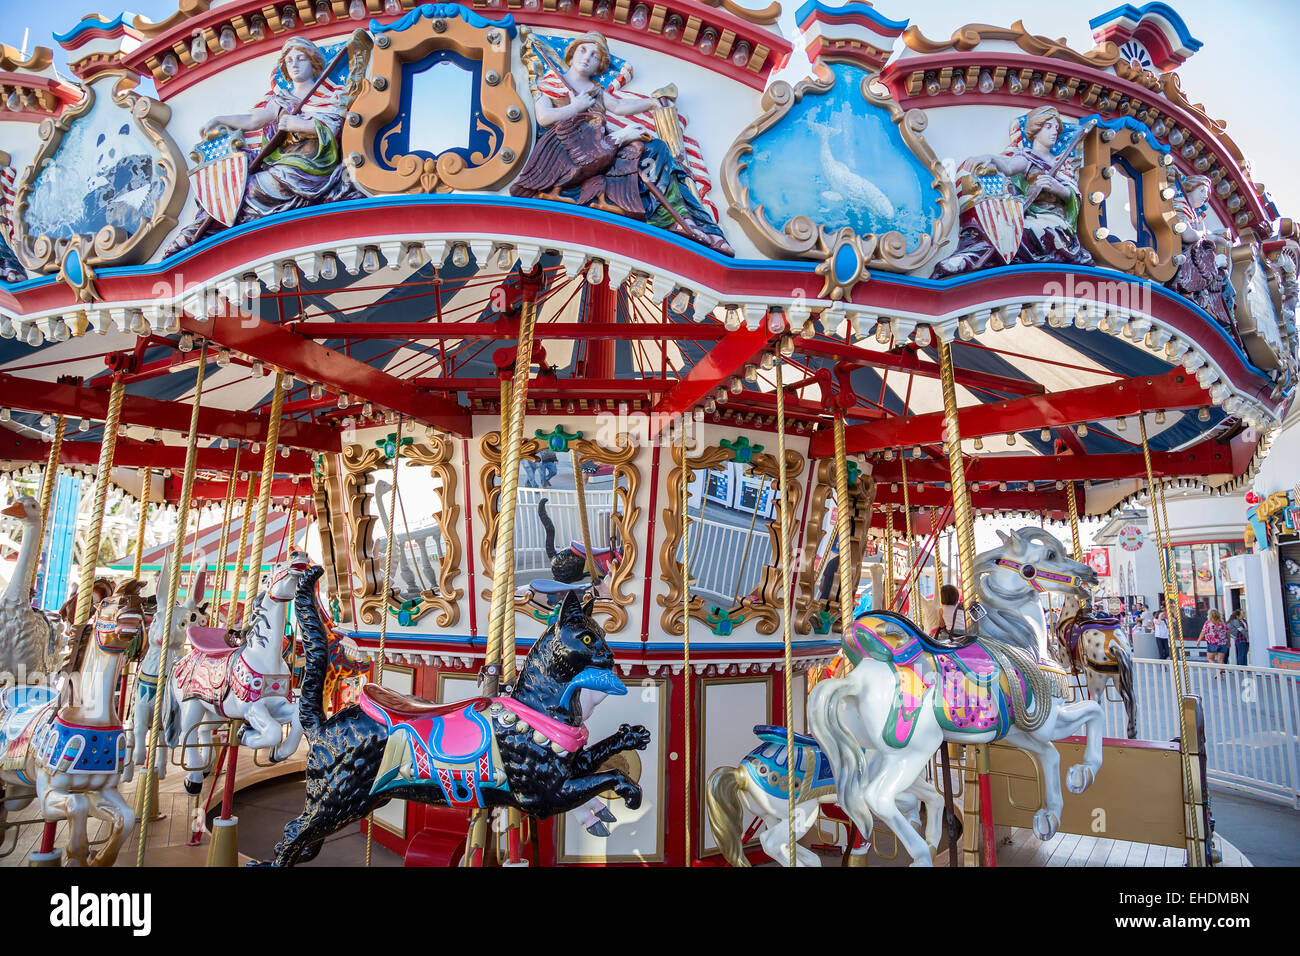 hight resolution of colorful carousel at belmont park san diego california